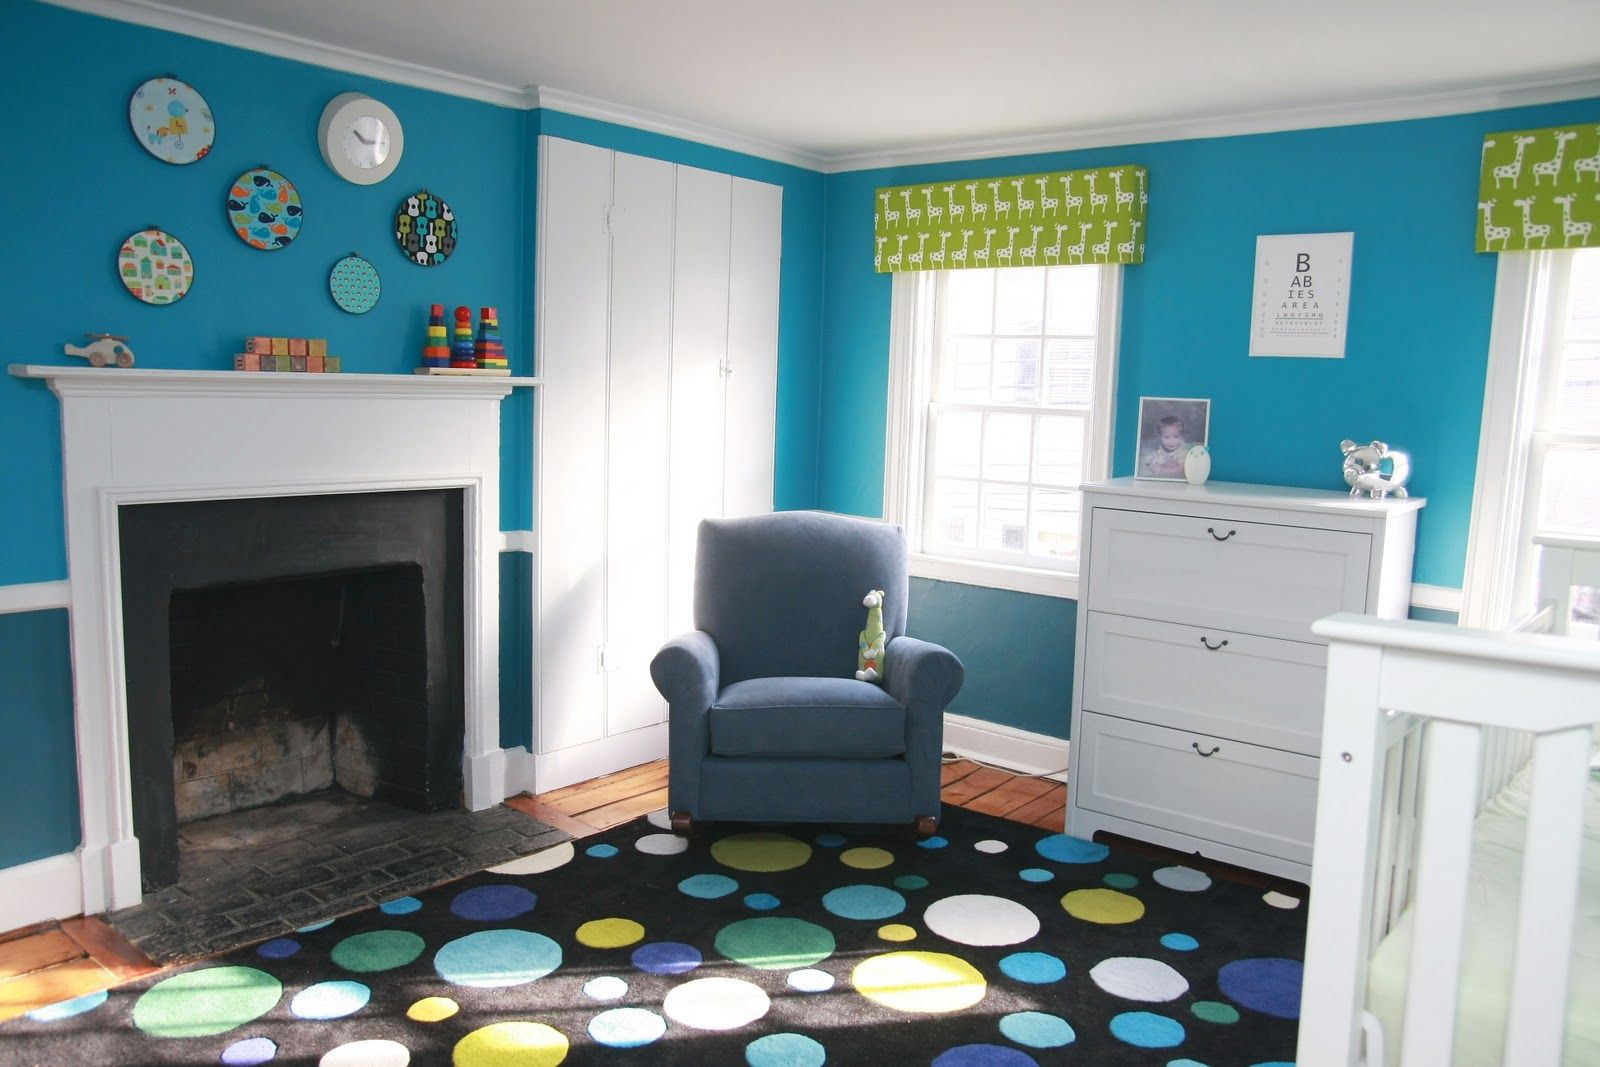 Bedroom colors blue and green - Benjamin Moore Meridian Blue Coat Of Arms Playroom Color Schemeblue Green